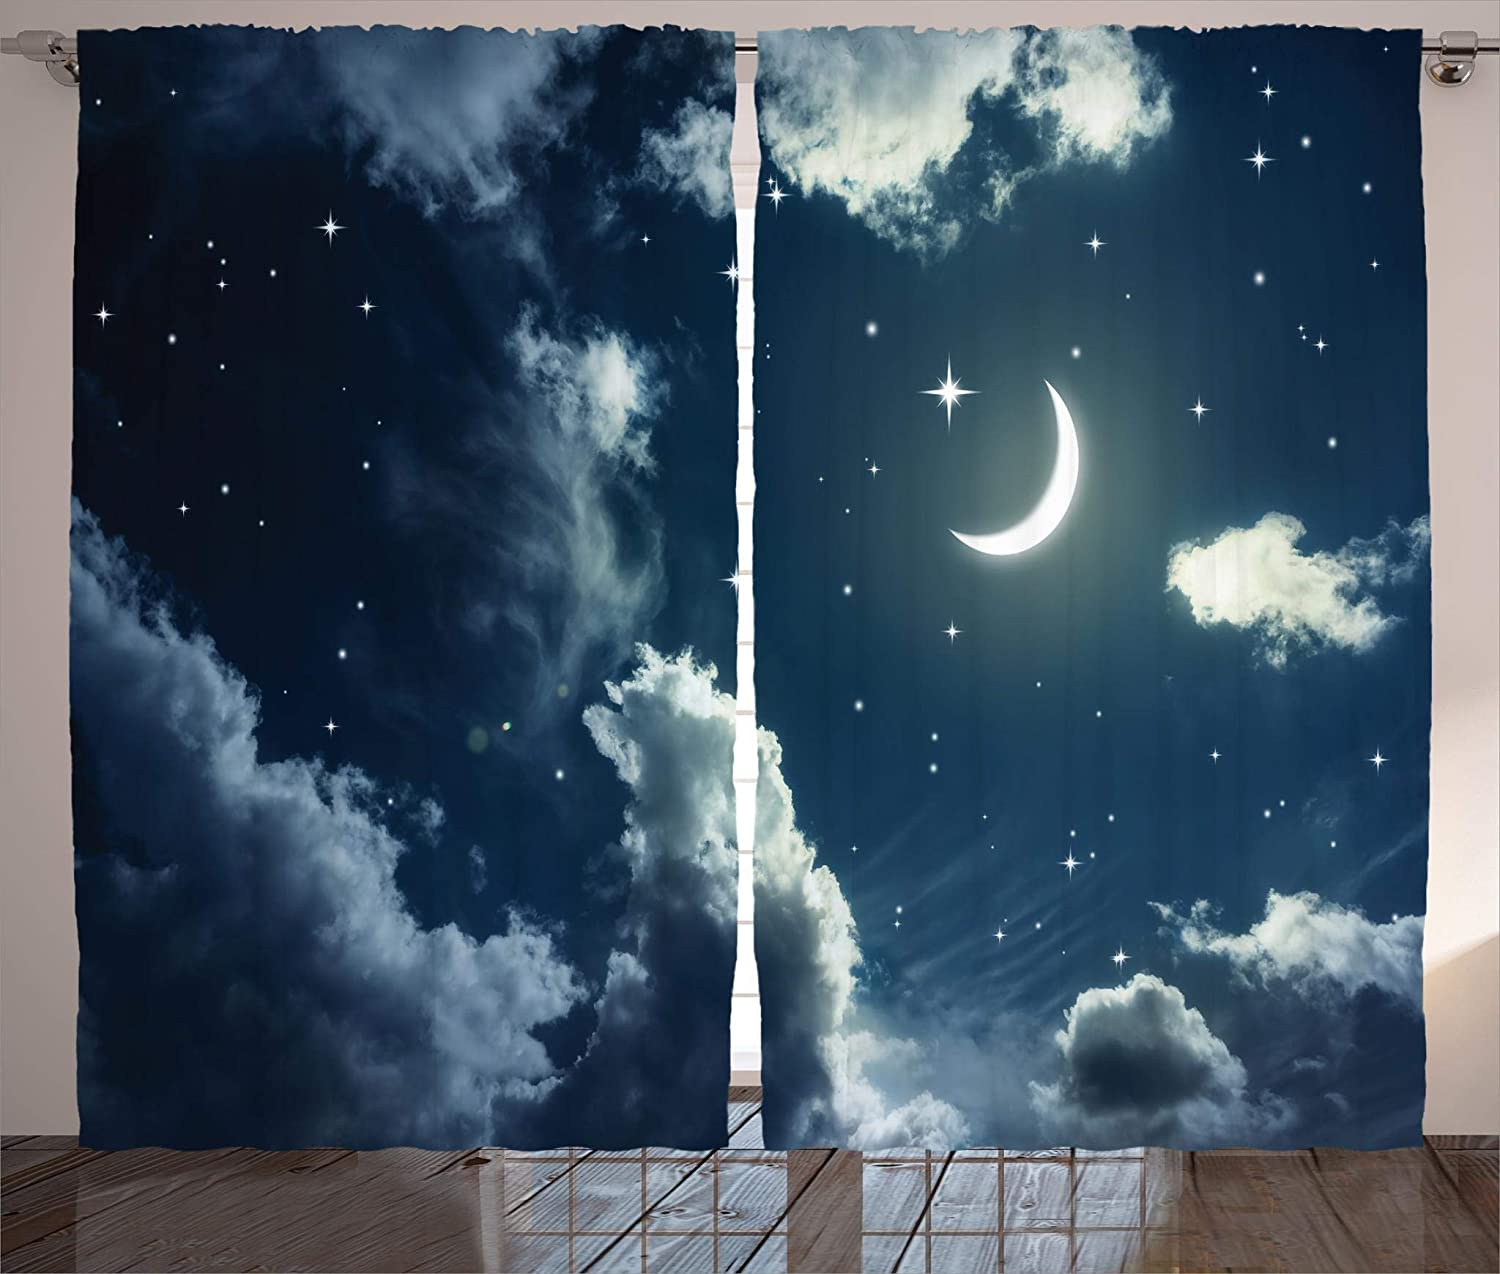 Star Curtains Crescent Moon And Stars On A Cloudy Starry Night Sky Moonlight Astronomy Theme Picture Living Room Bedroom Window